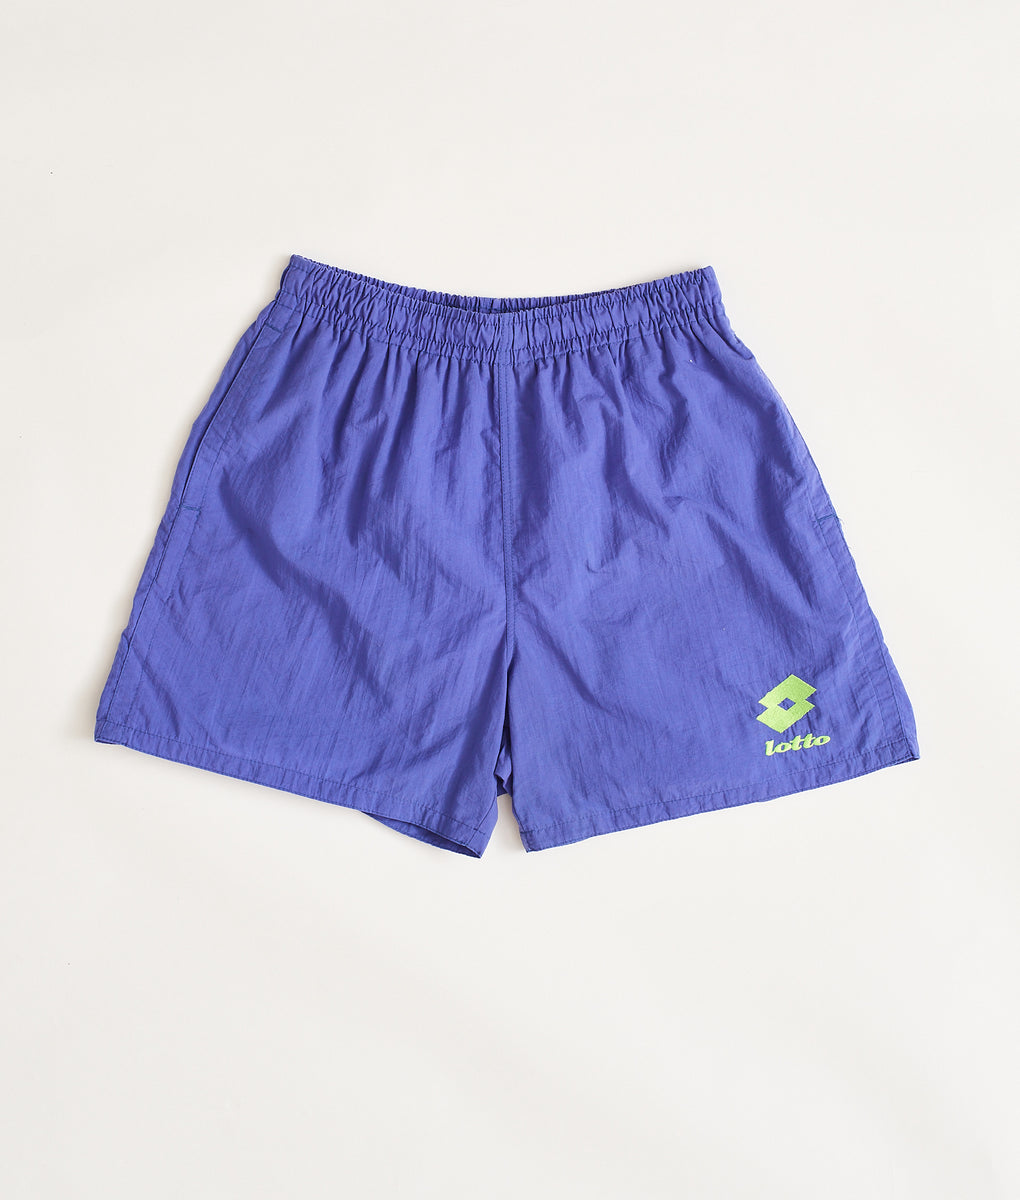 Lotto Neon Football Shorts (XS) - FROTHLYF